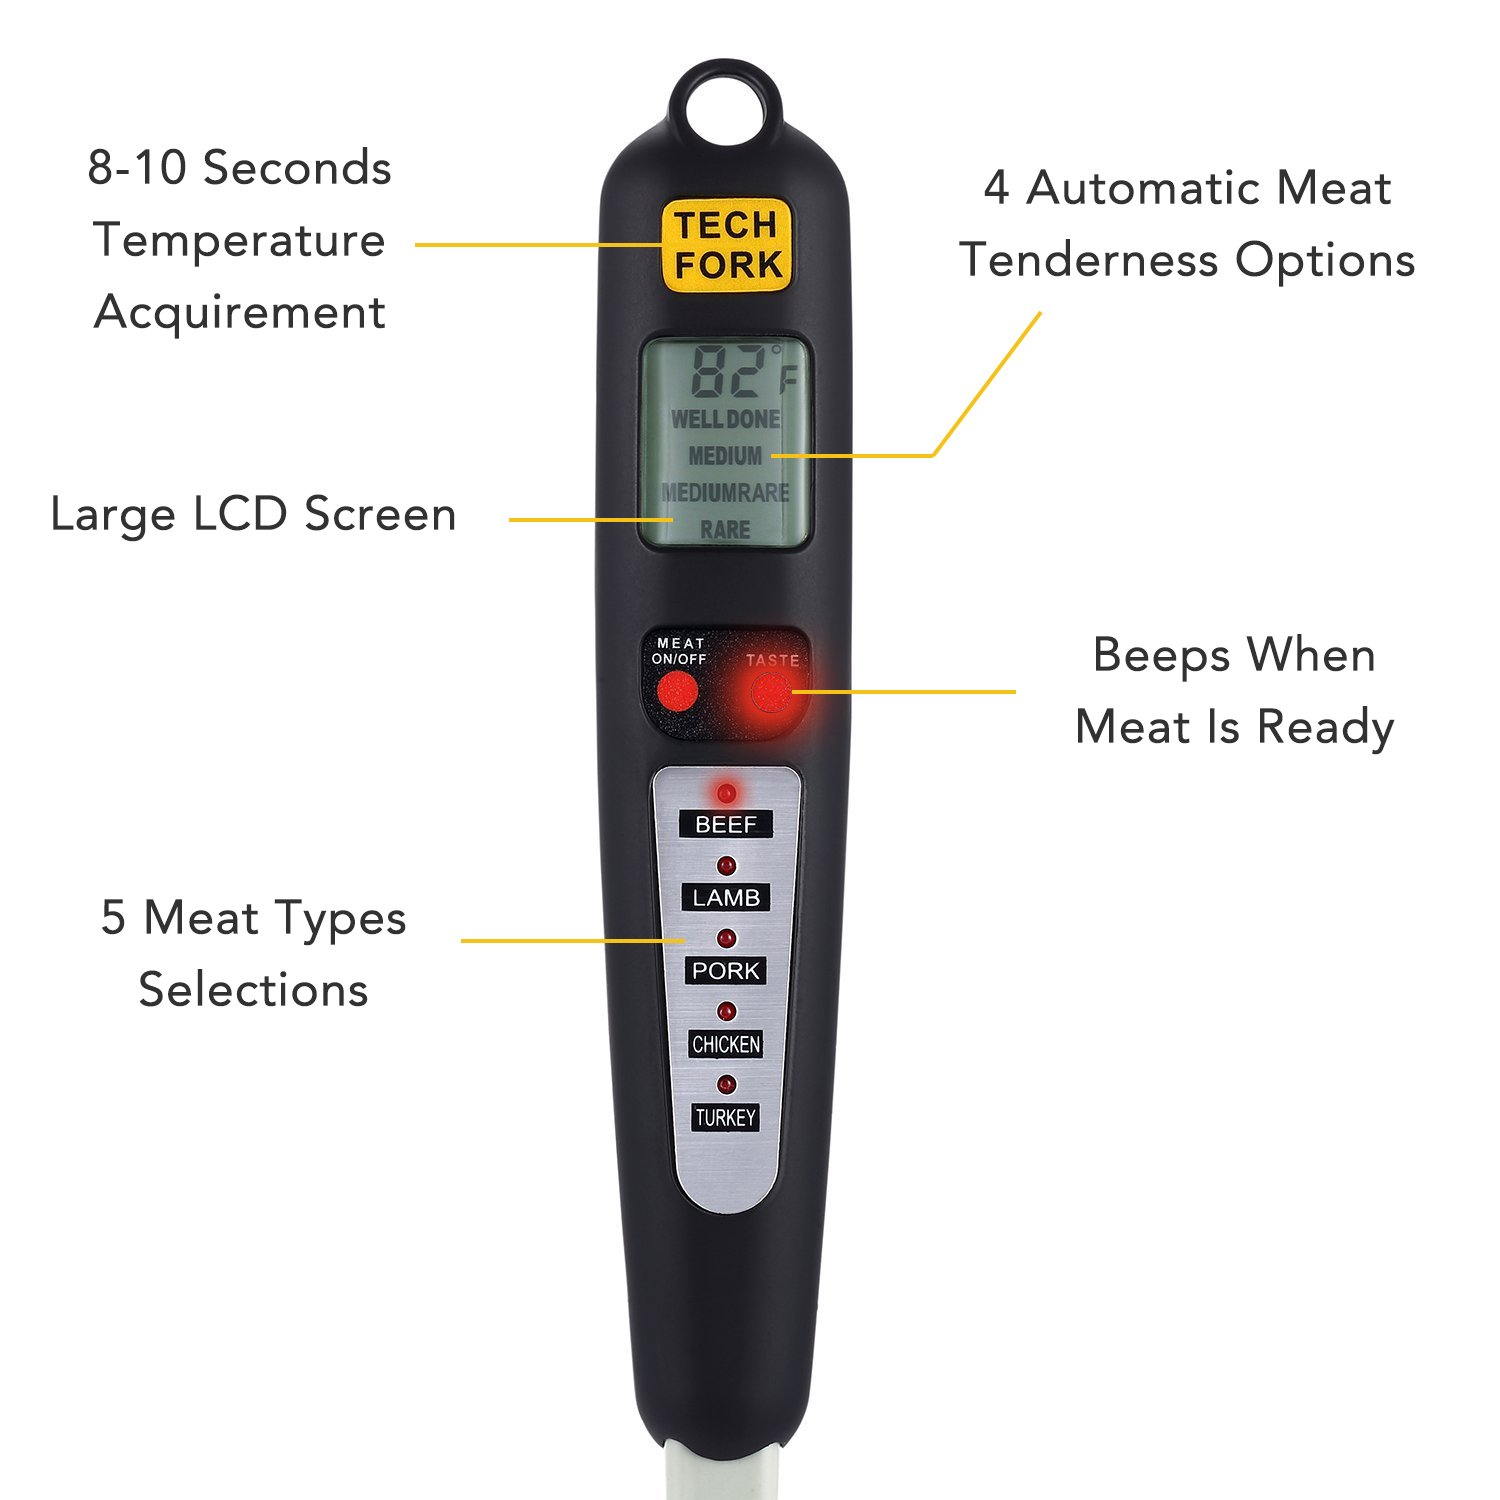 Barbestar Digital Meat Thermometer for Grilling with Long Fork,Instant Read BBQ Cooking Thermometer with LED Screen, Ready Alarm (Black) by Barbestar (Image #1)